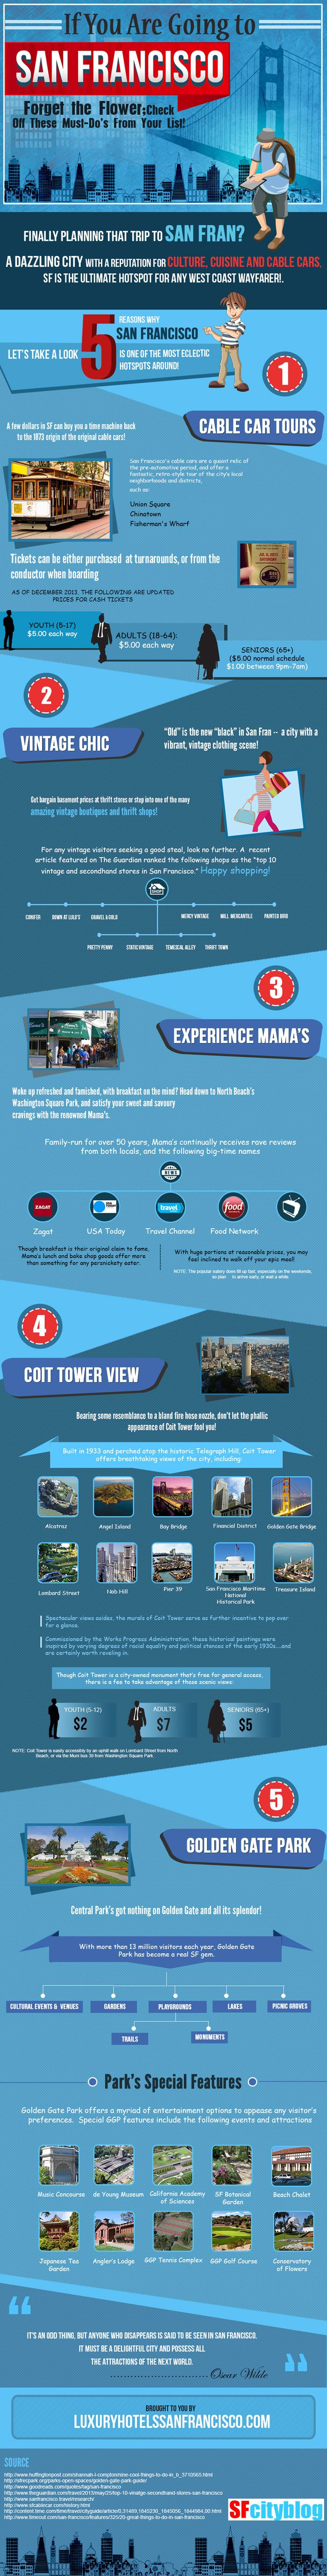 Infographic: If You Are Going To San Francisco